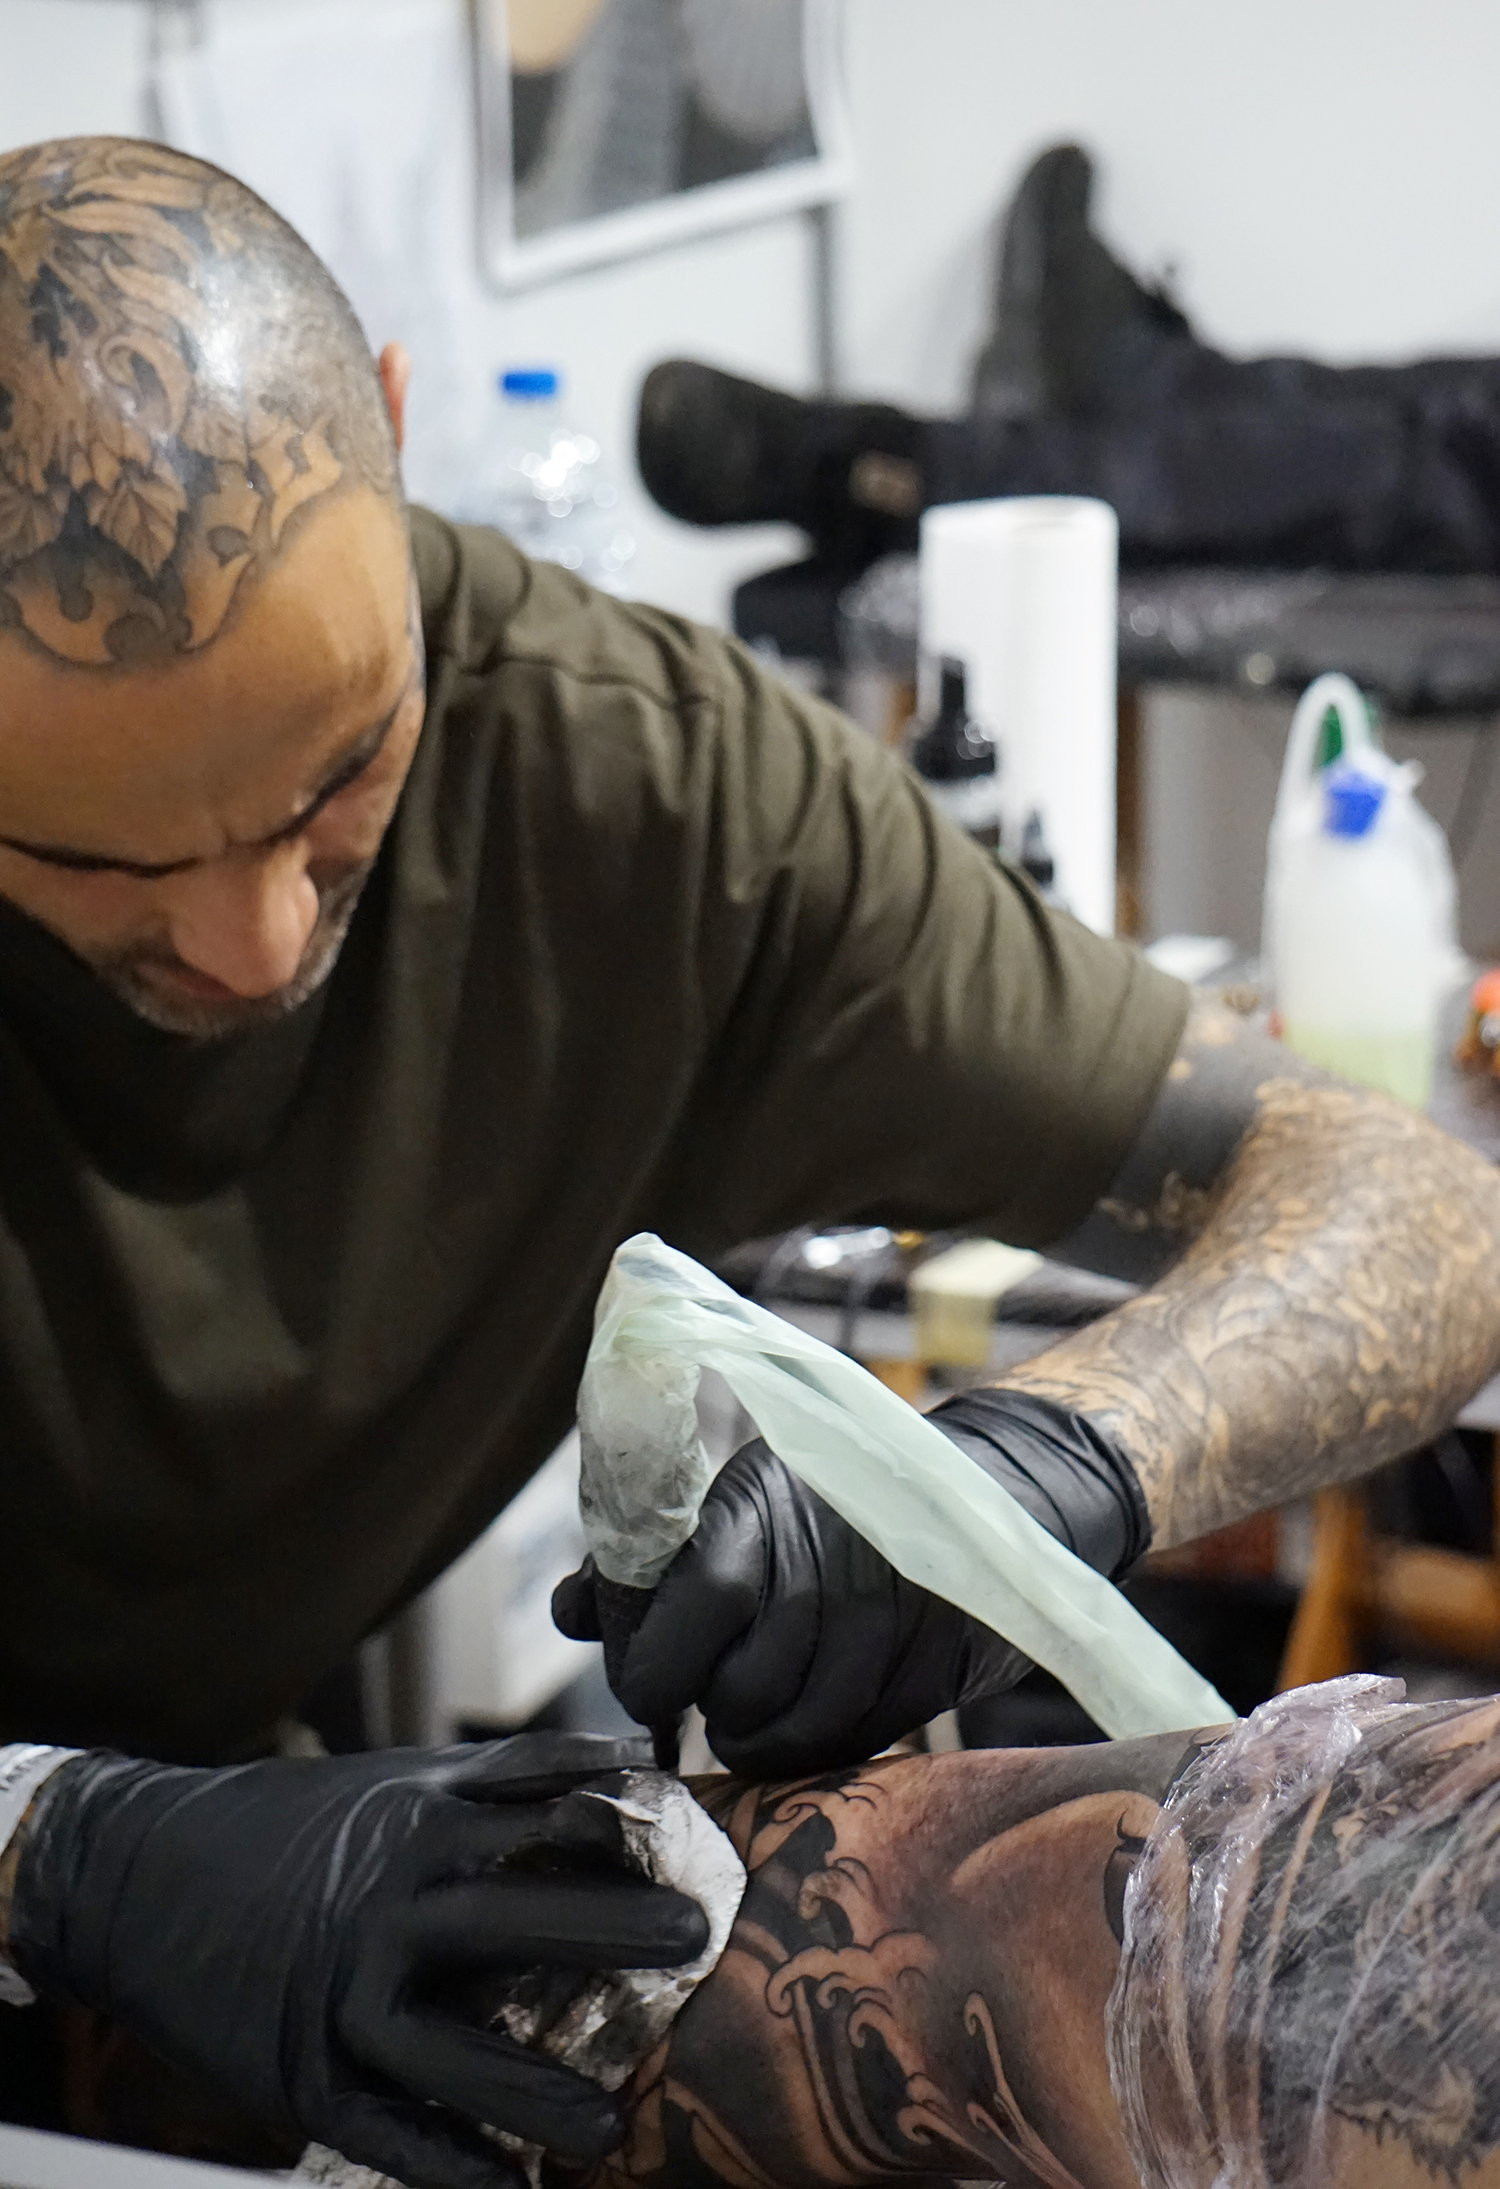 tattooer Alberto Solposto adding a Tibetan skull on the bodysuit.